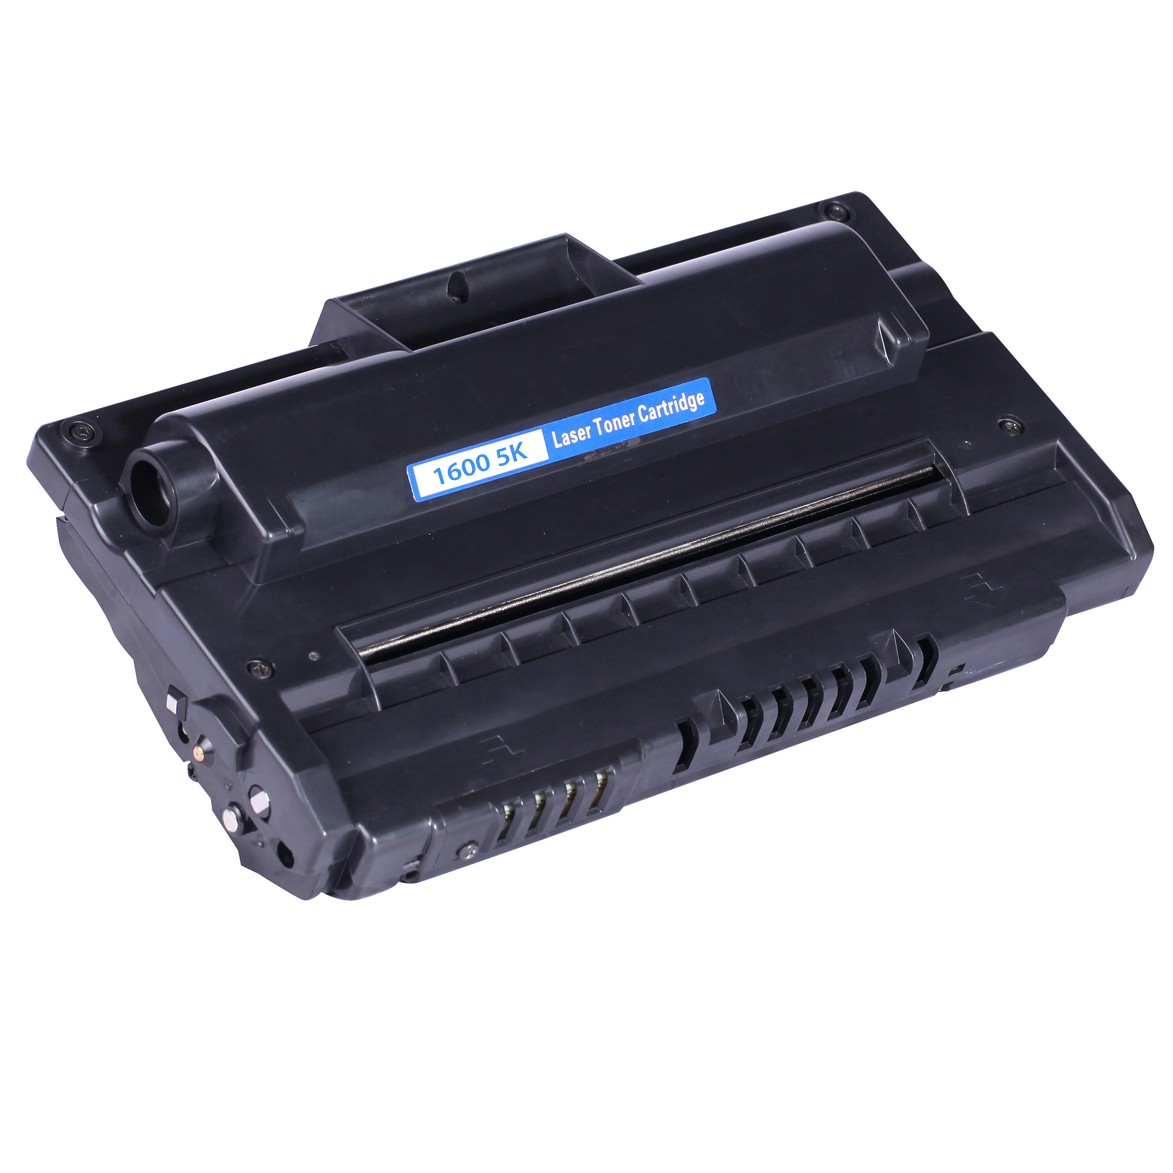 Image of   Dell 1600 5K (593-10082) Lasertoner,sort.Kompatibel,5000 sider